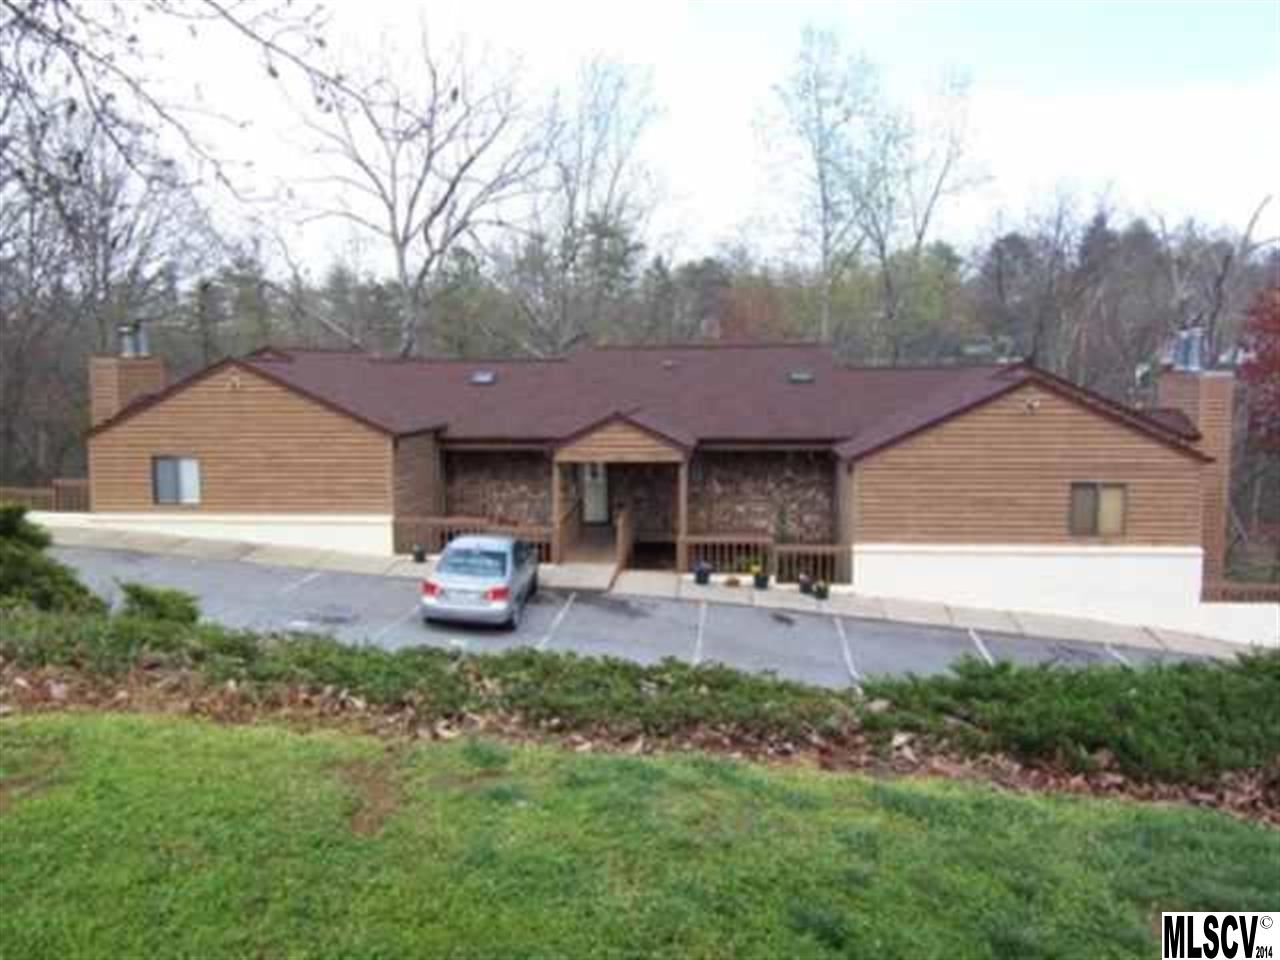 1420 11th St Dr Nw # 25, Hickory, NC 28601